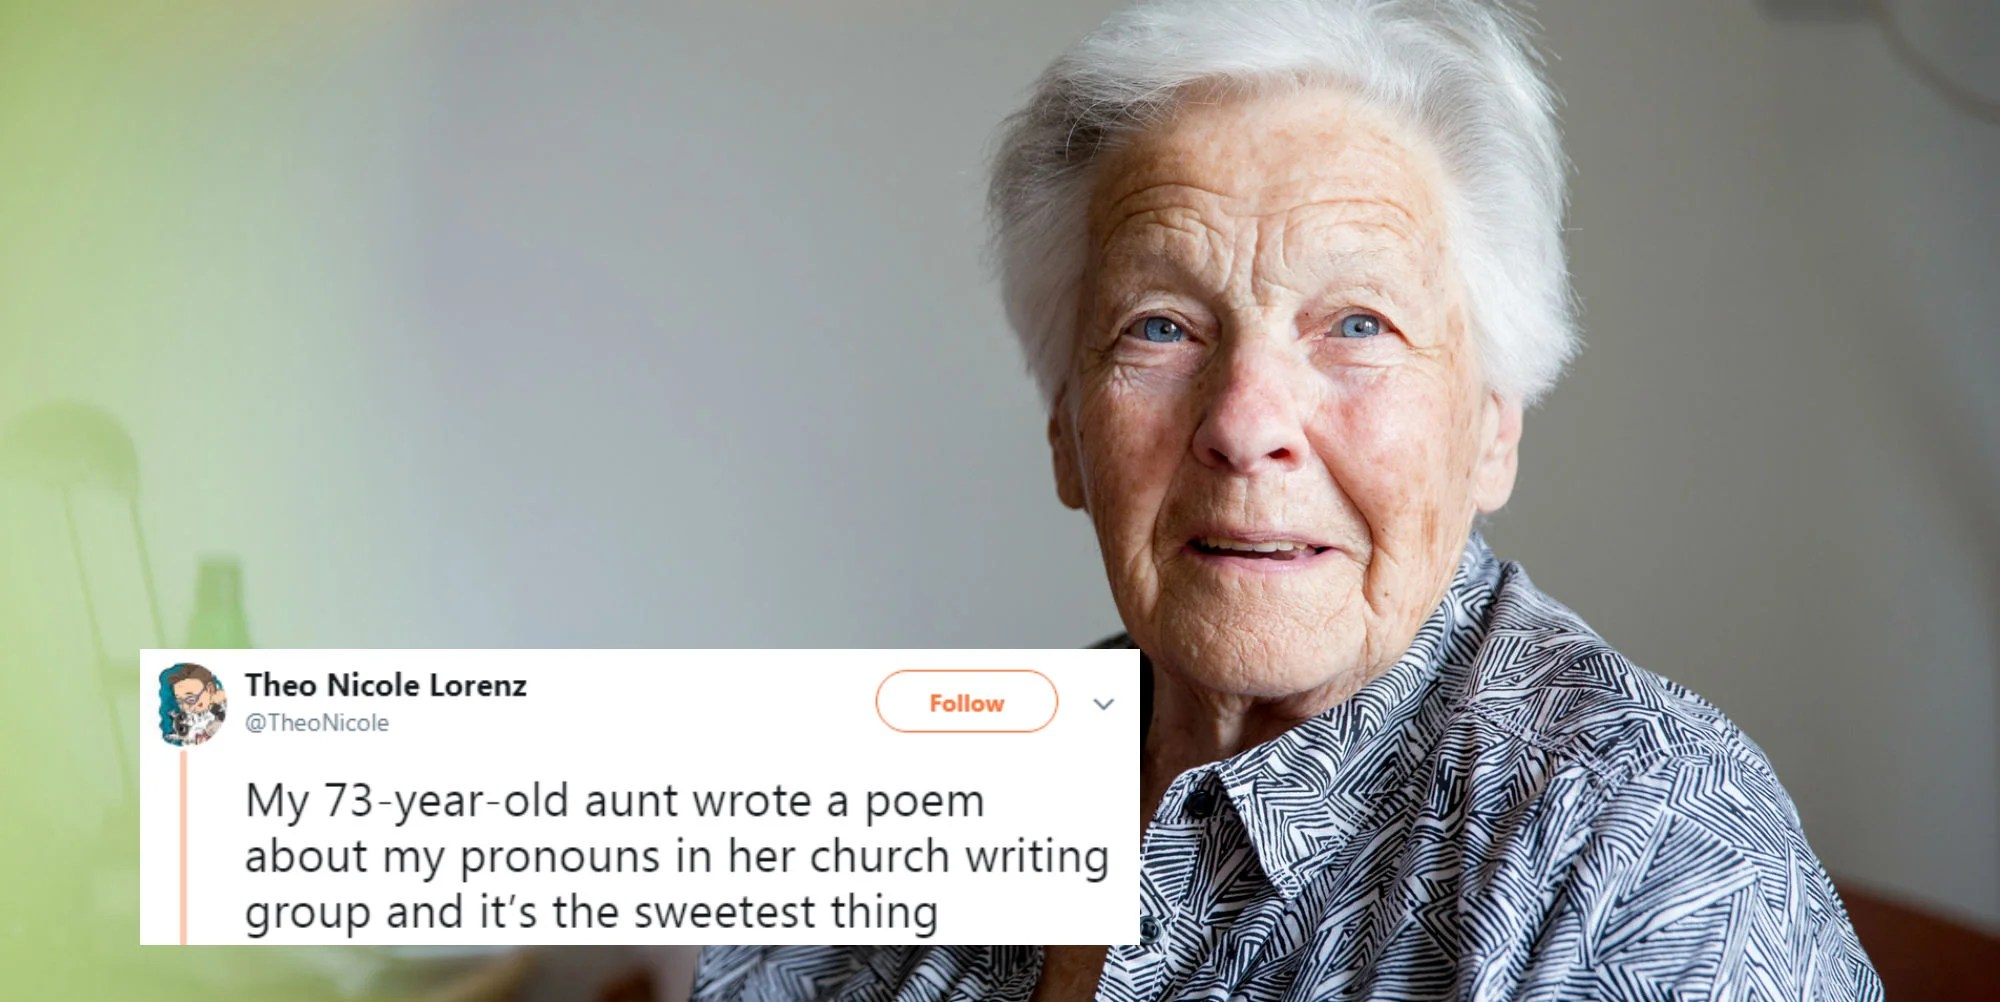 A Poem By A 73 Year Old Woman About Non Binary Pronouns Has Gone Viral